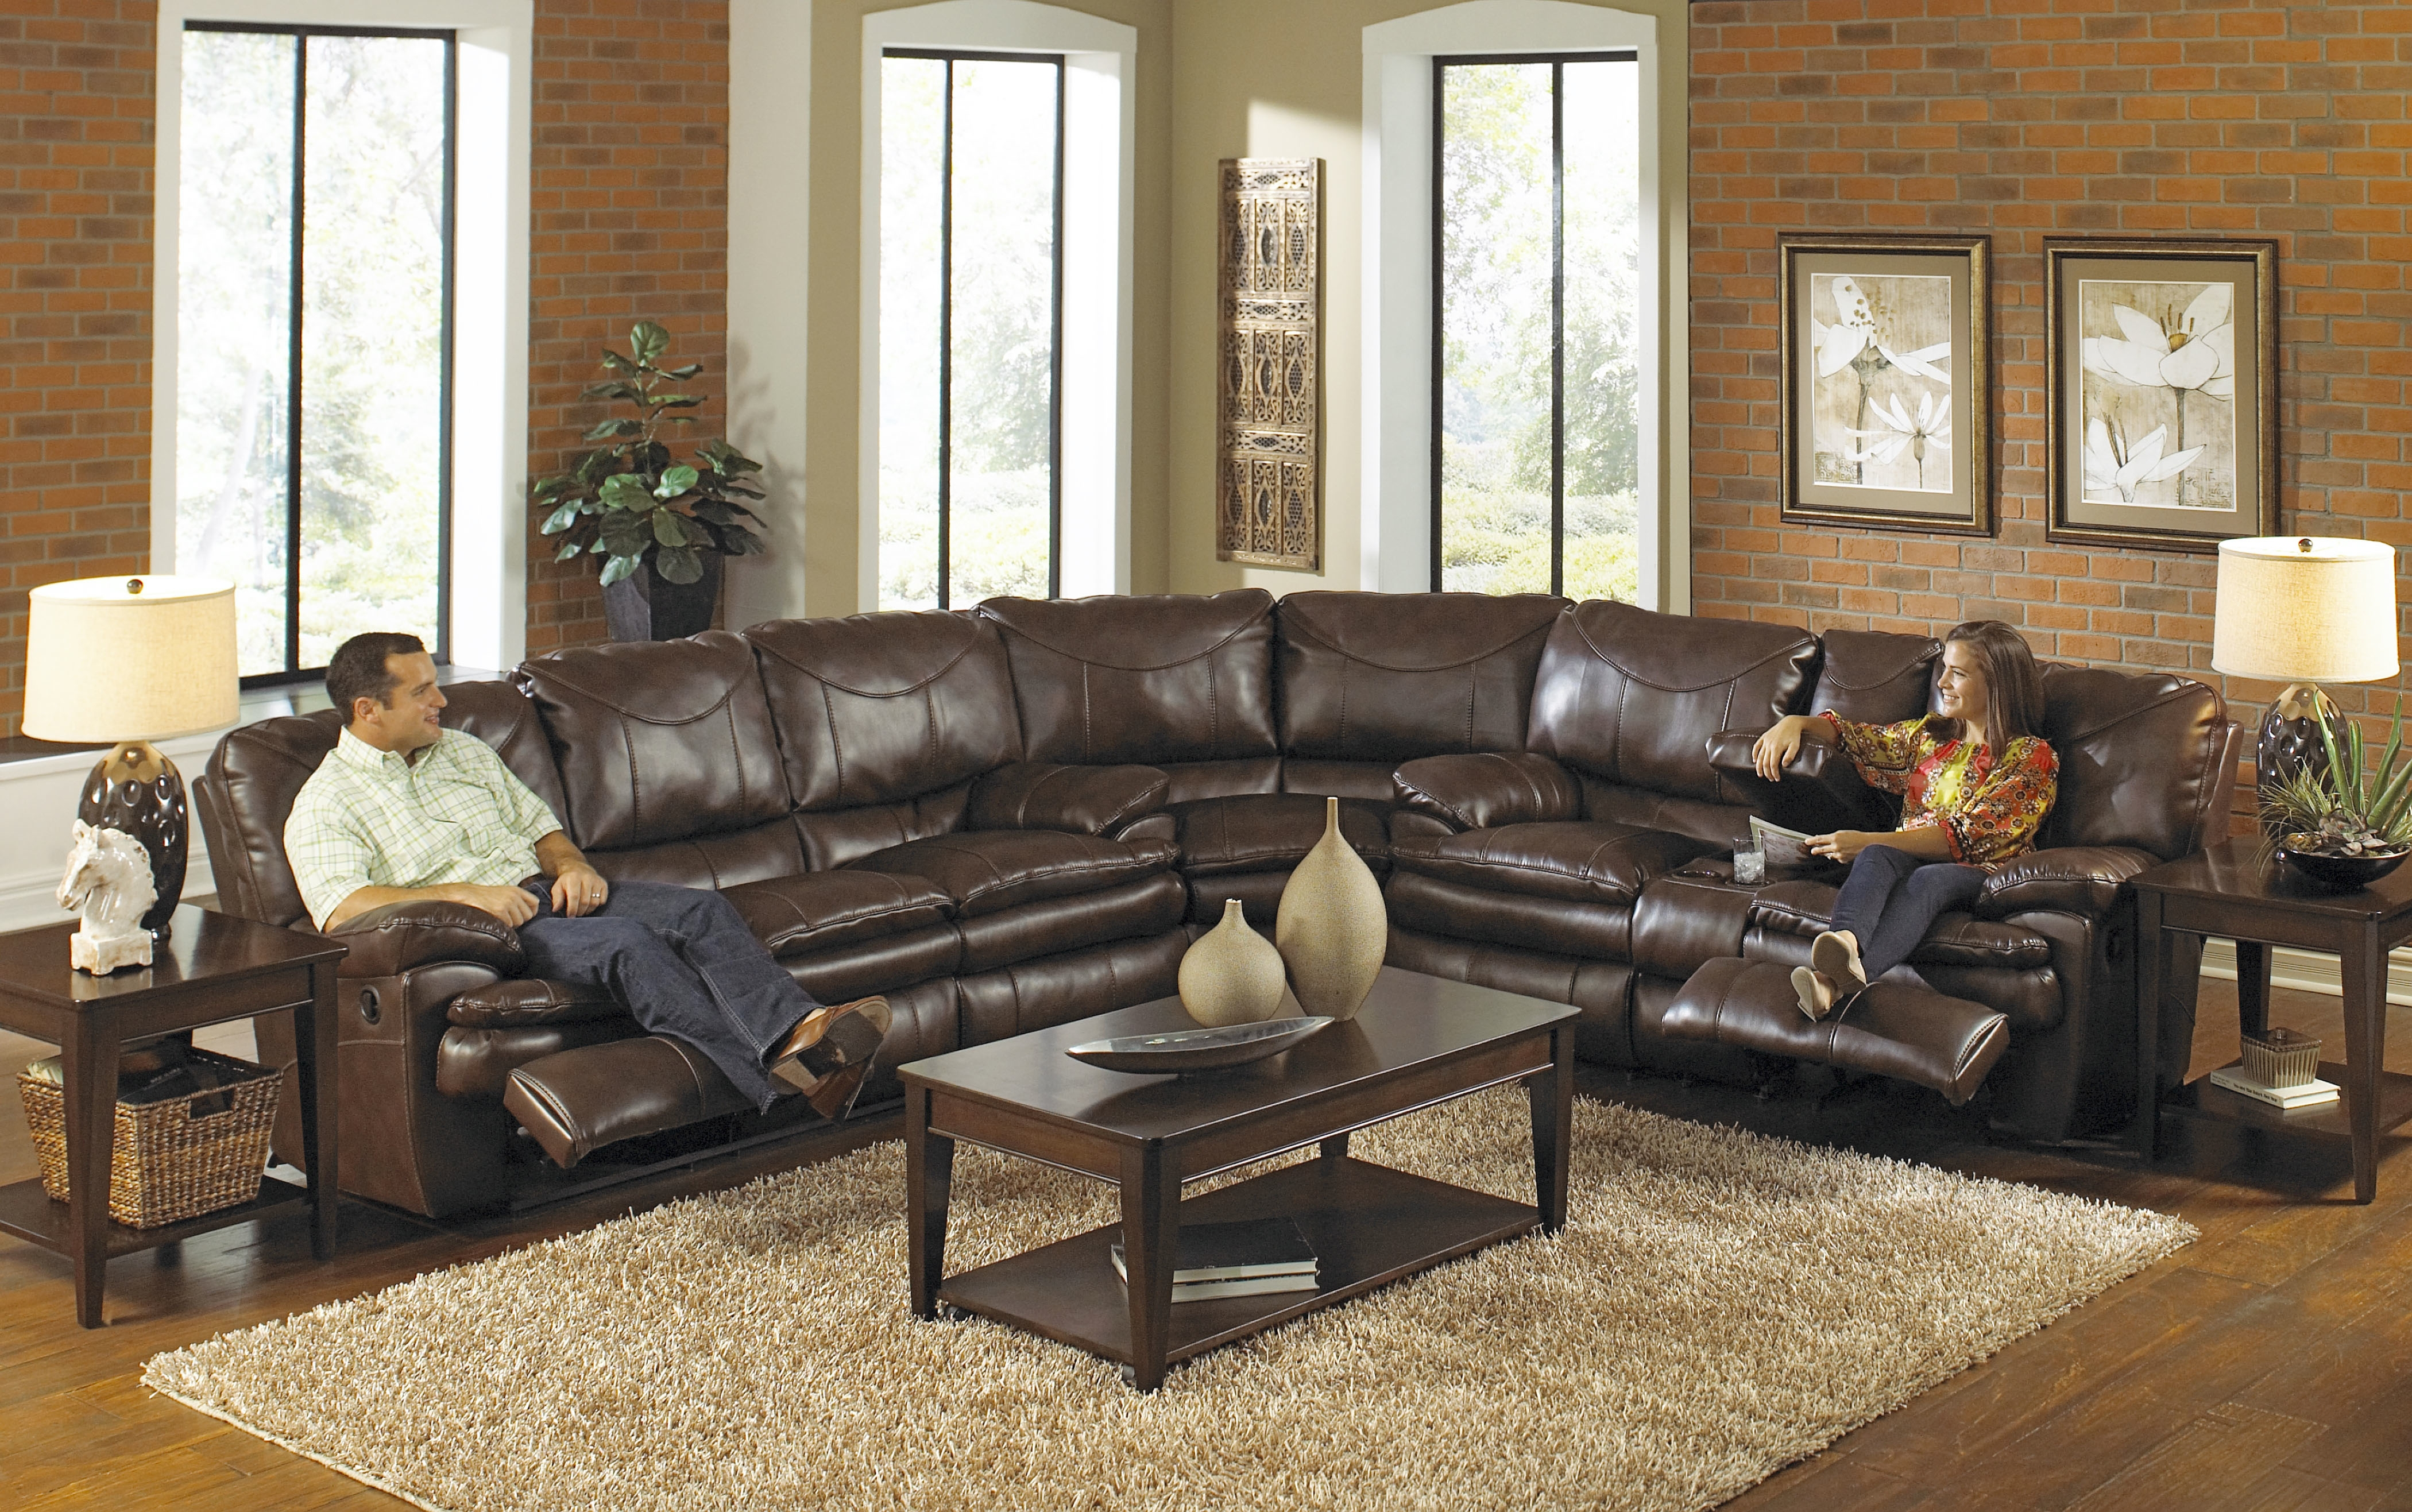 Elegant Large Sectional Sofas With Recliners 94 In Curved With Curved Sectional Sofa With Recliner (#9 of 12)